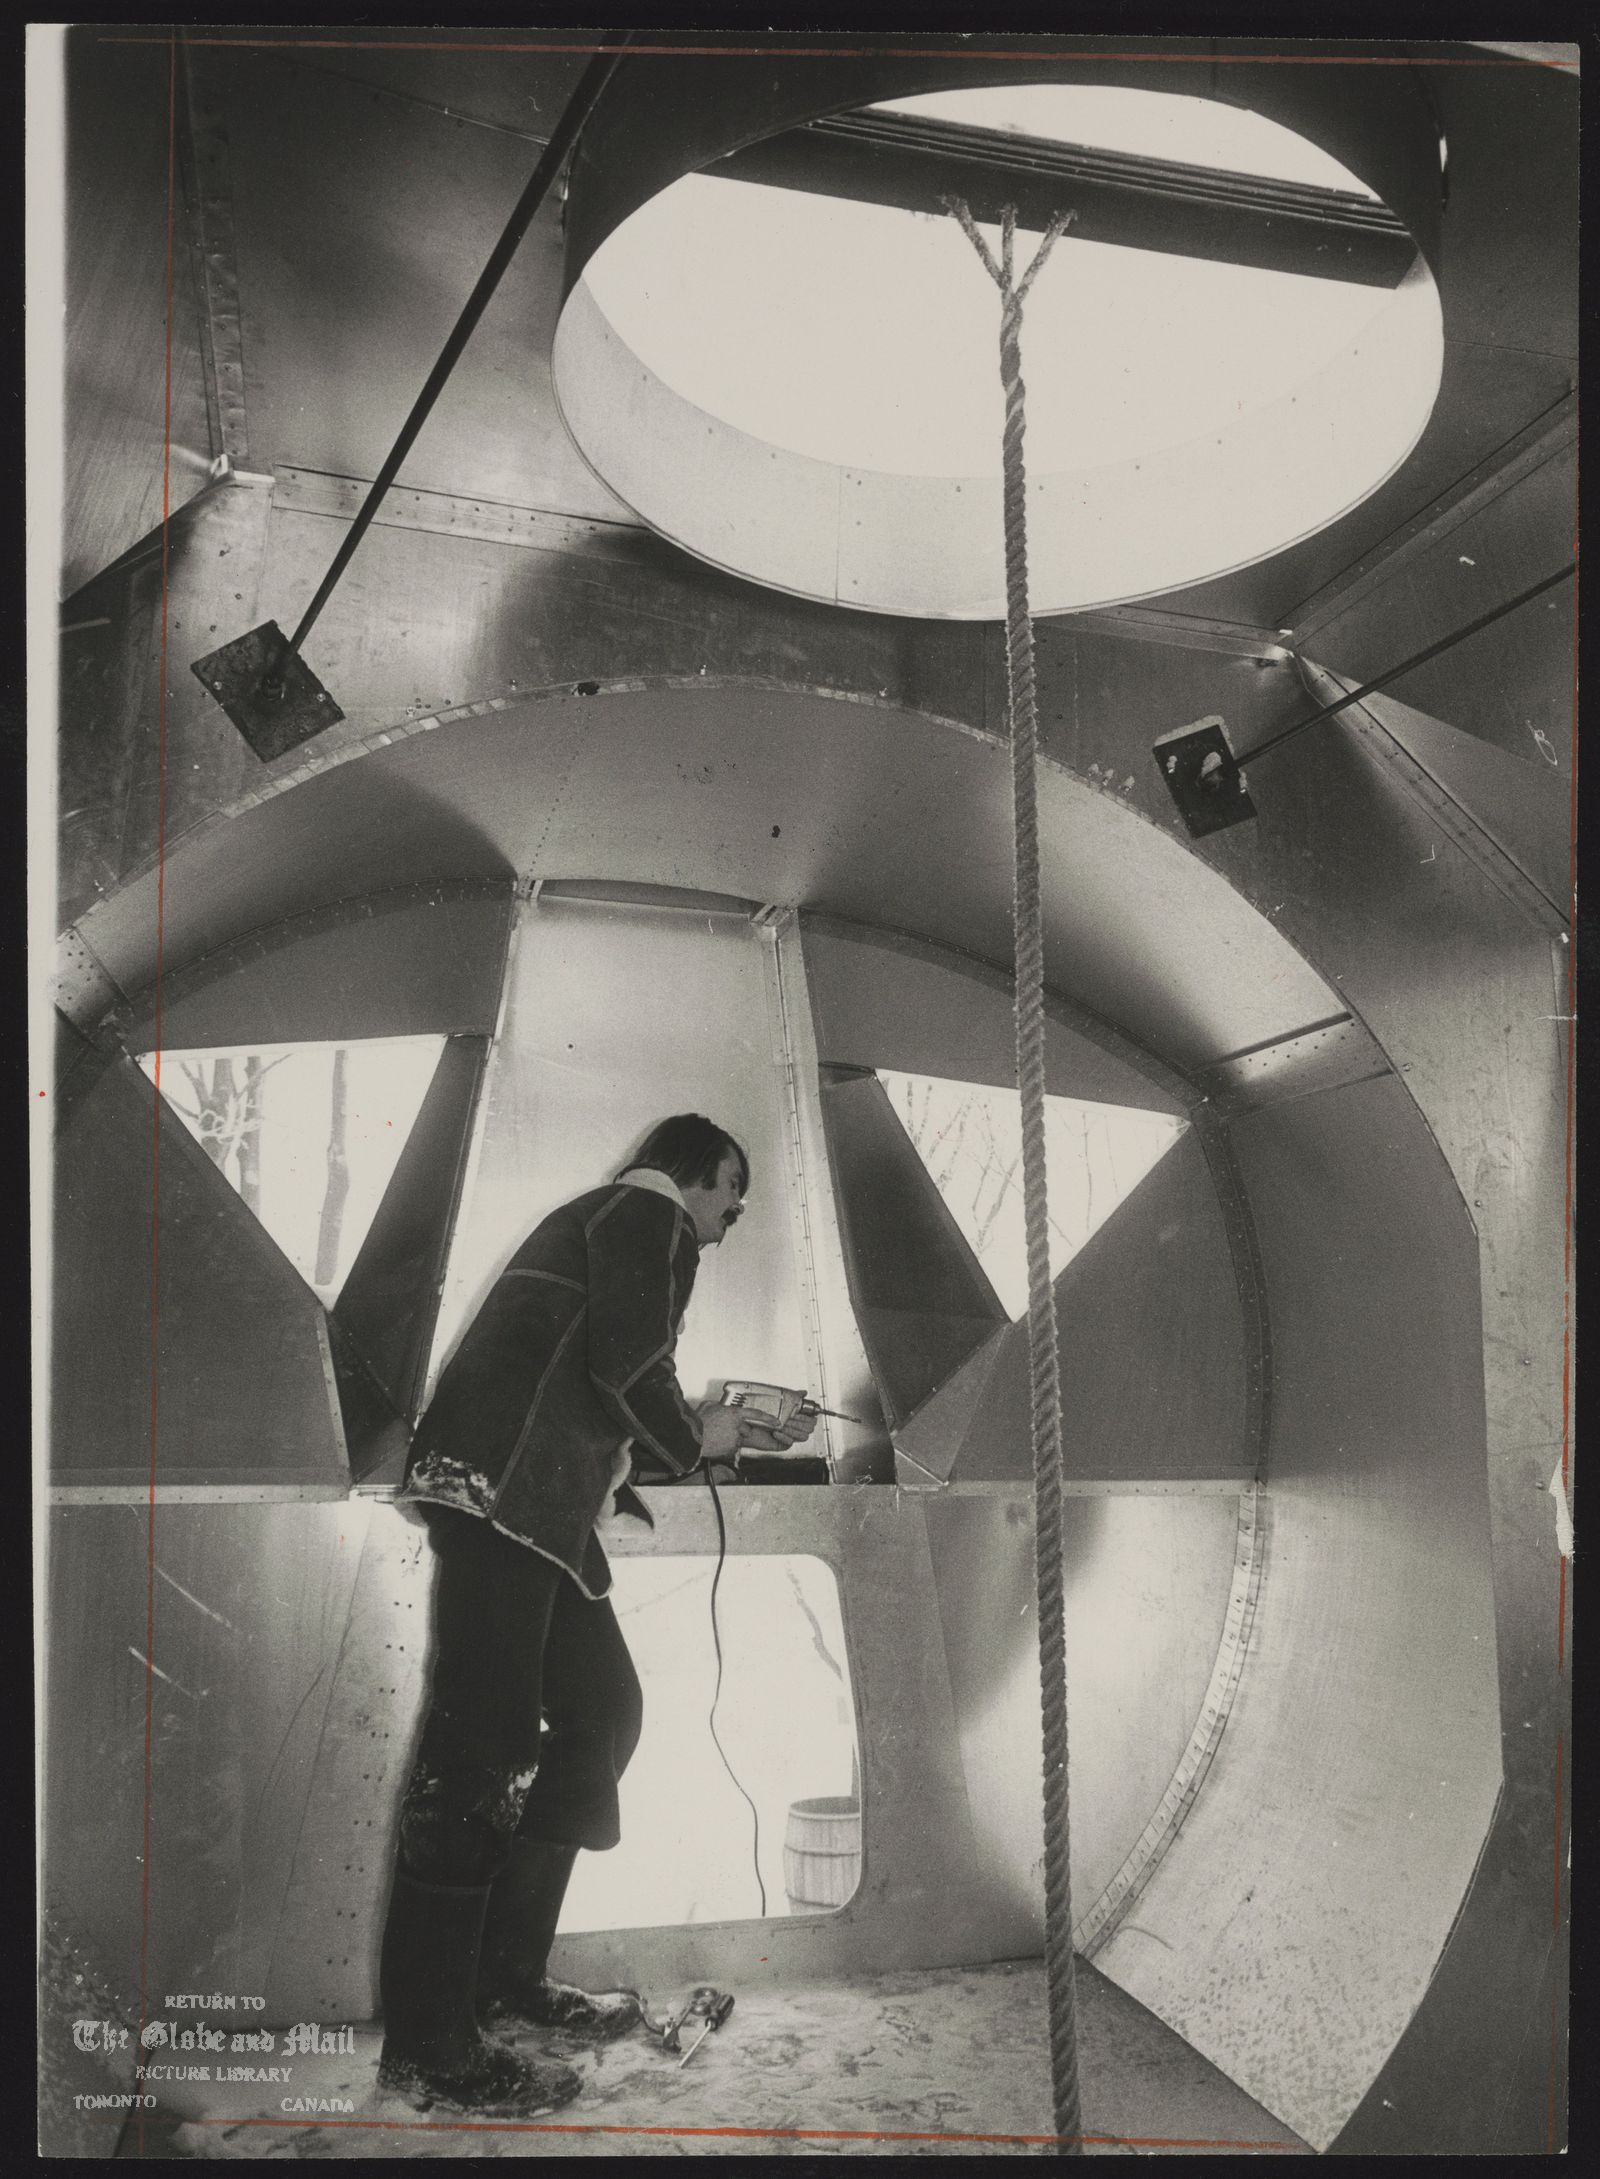 William LISHMAN Pickering sculptor (Lishman inside model of lunar landing module he built in his back yard. Plans to use it as a guest house)